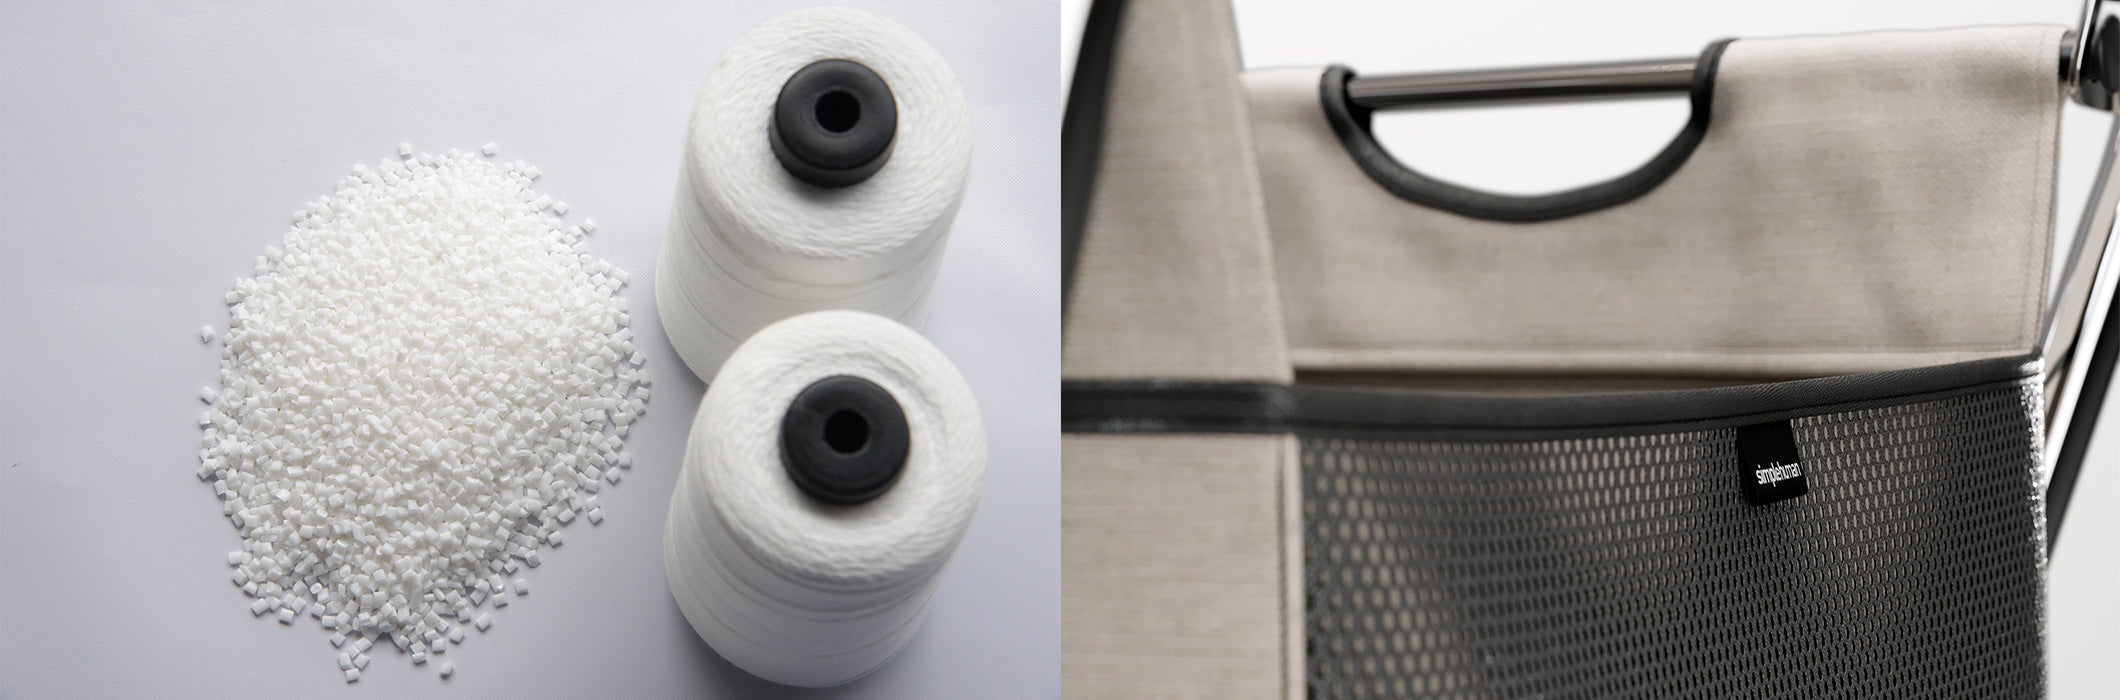 post-consumer recycled materials and simplehuman x-frame laundry hamper